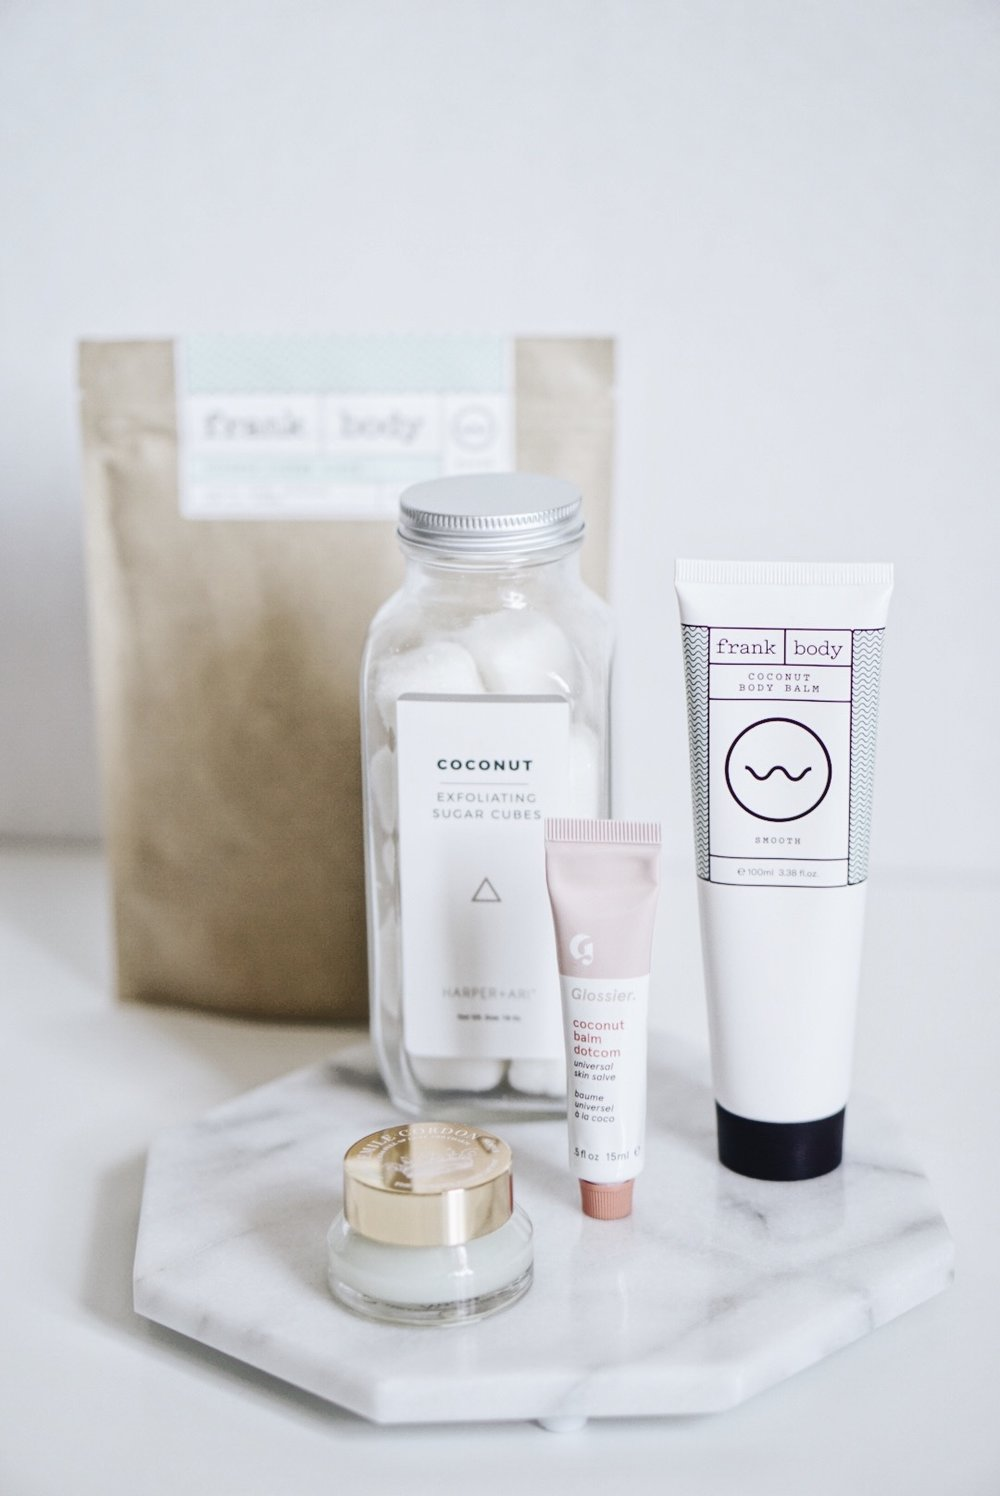 Coconut Scented Beauty: Frank Body, Glossier, Emile Cordon, Harper + Ari